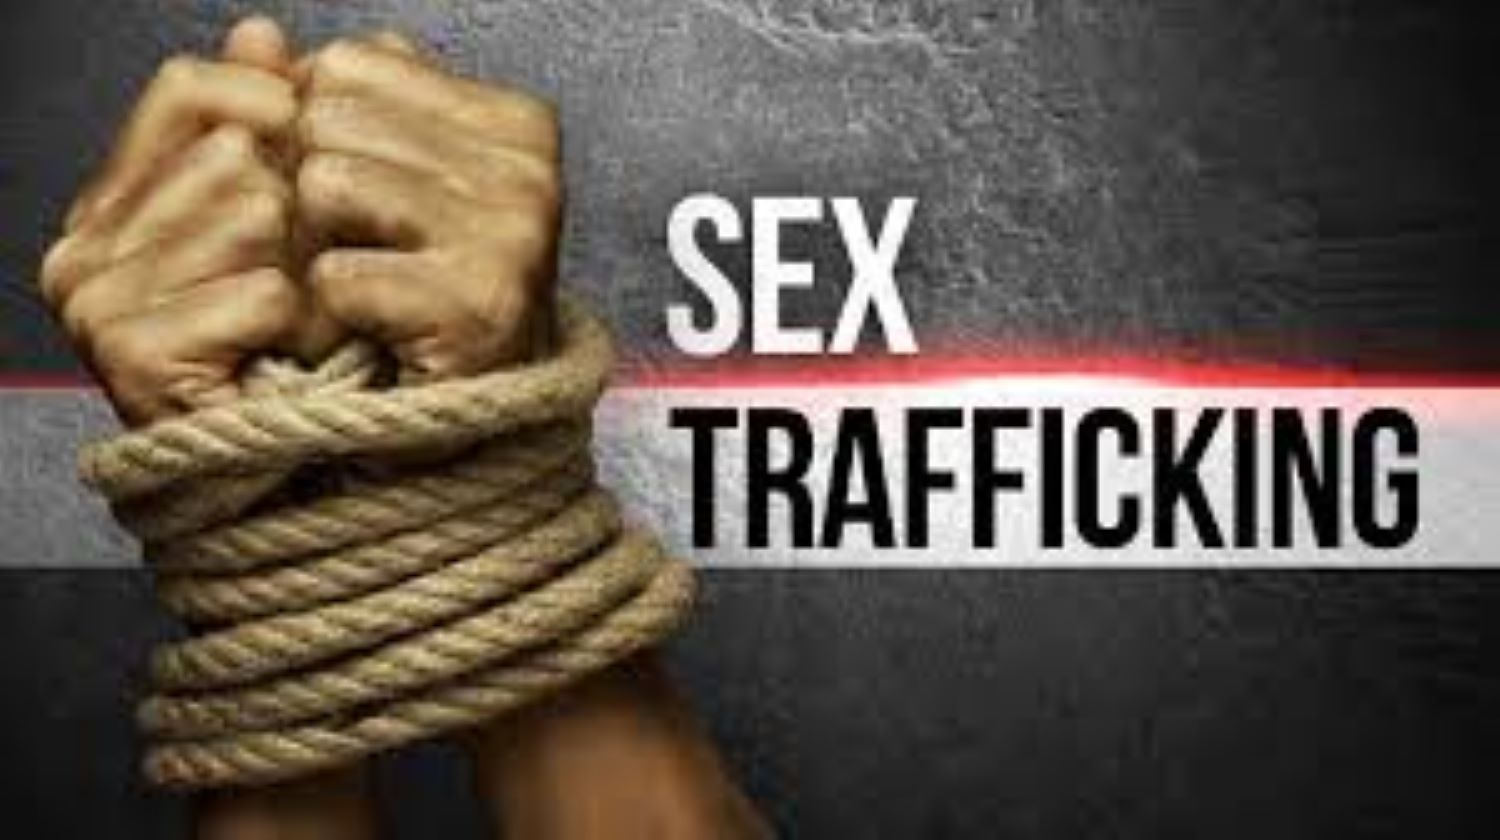 I was sold into prostitution by my boyfriend for 500,000 CFA ― Teenager